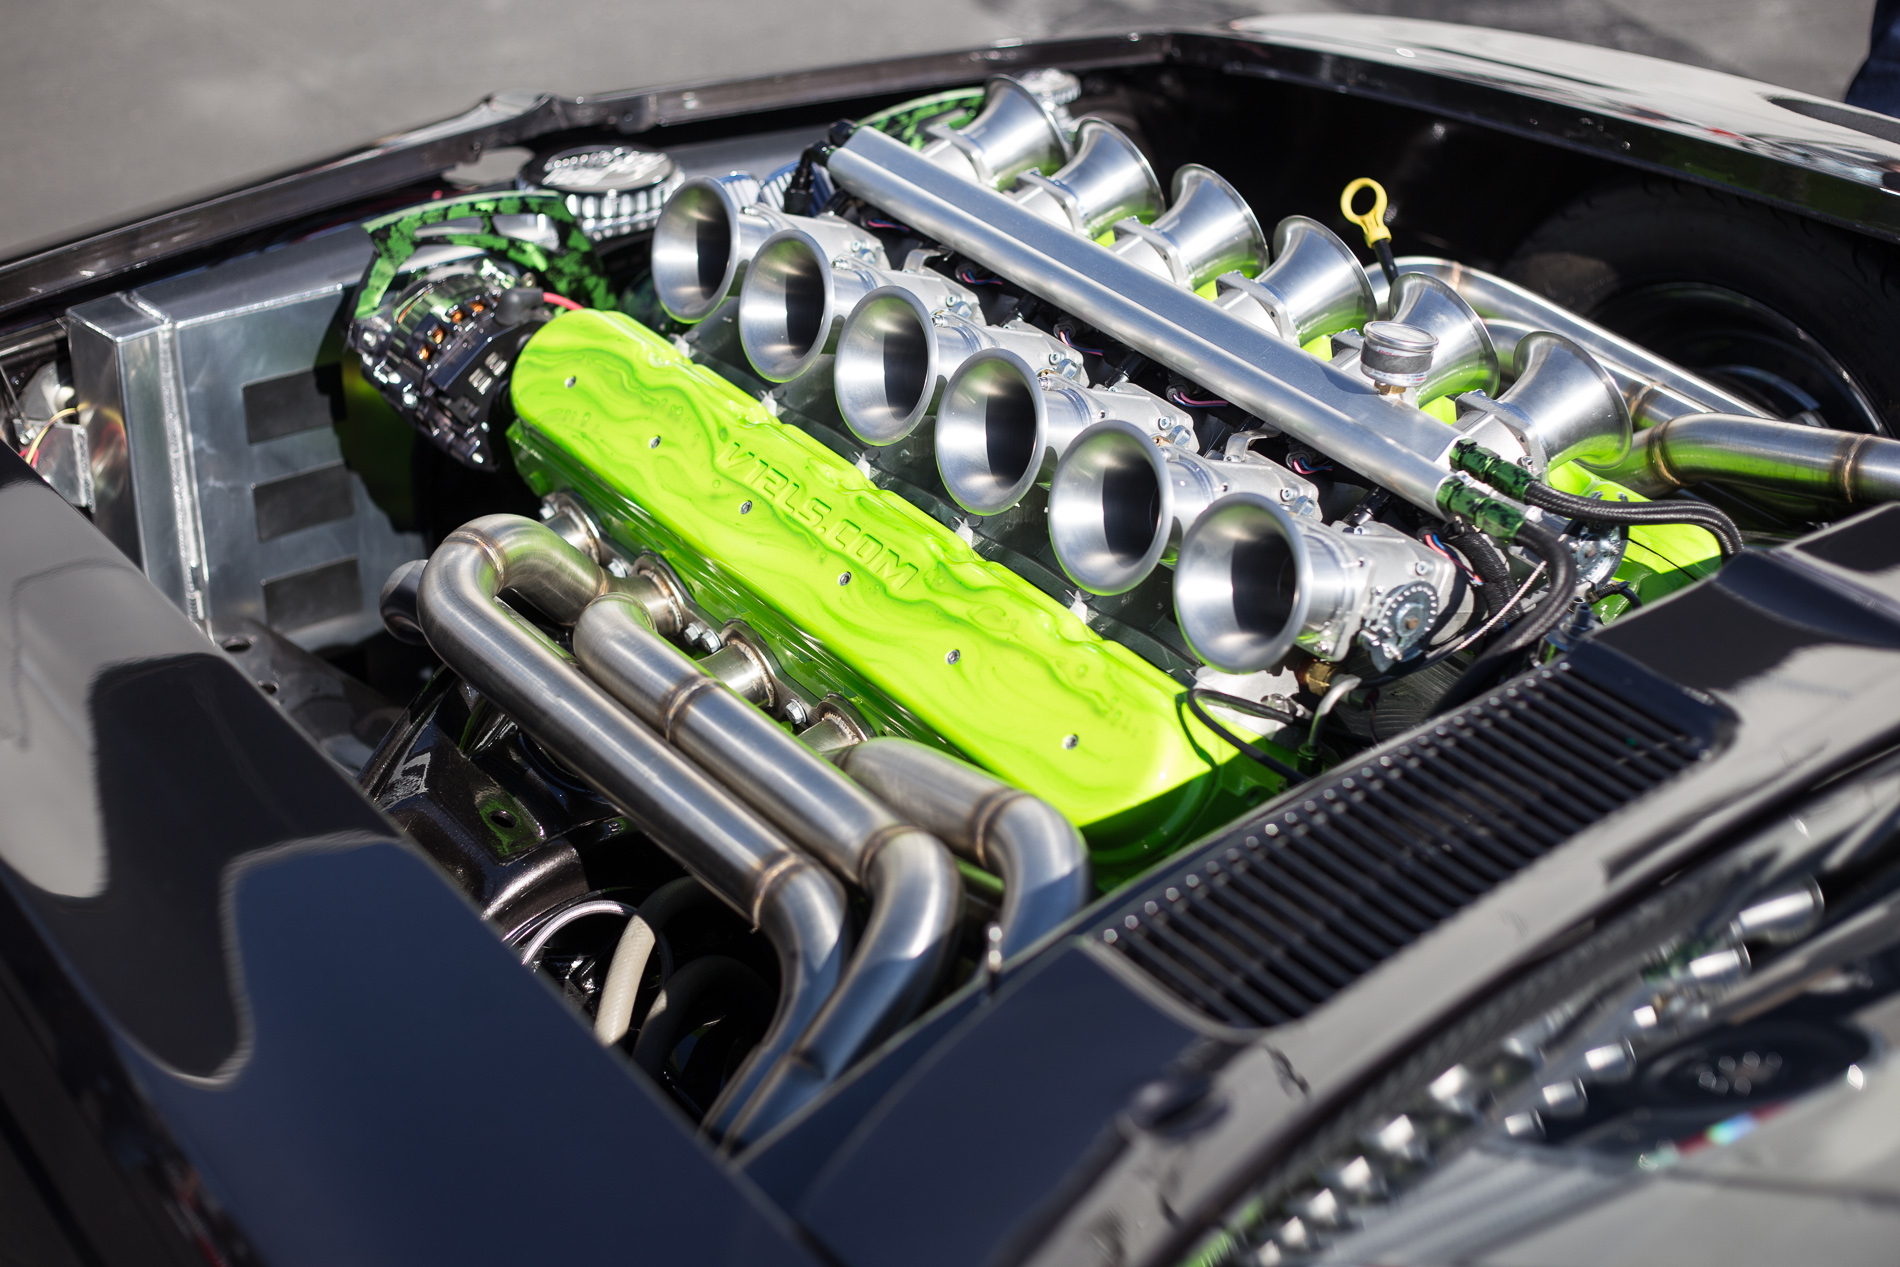 engine bay detailing rochster ny